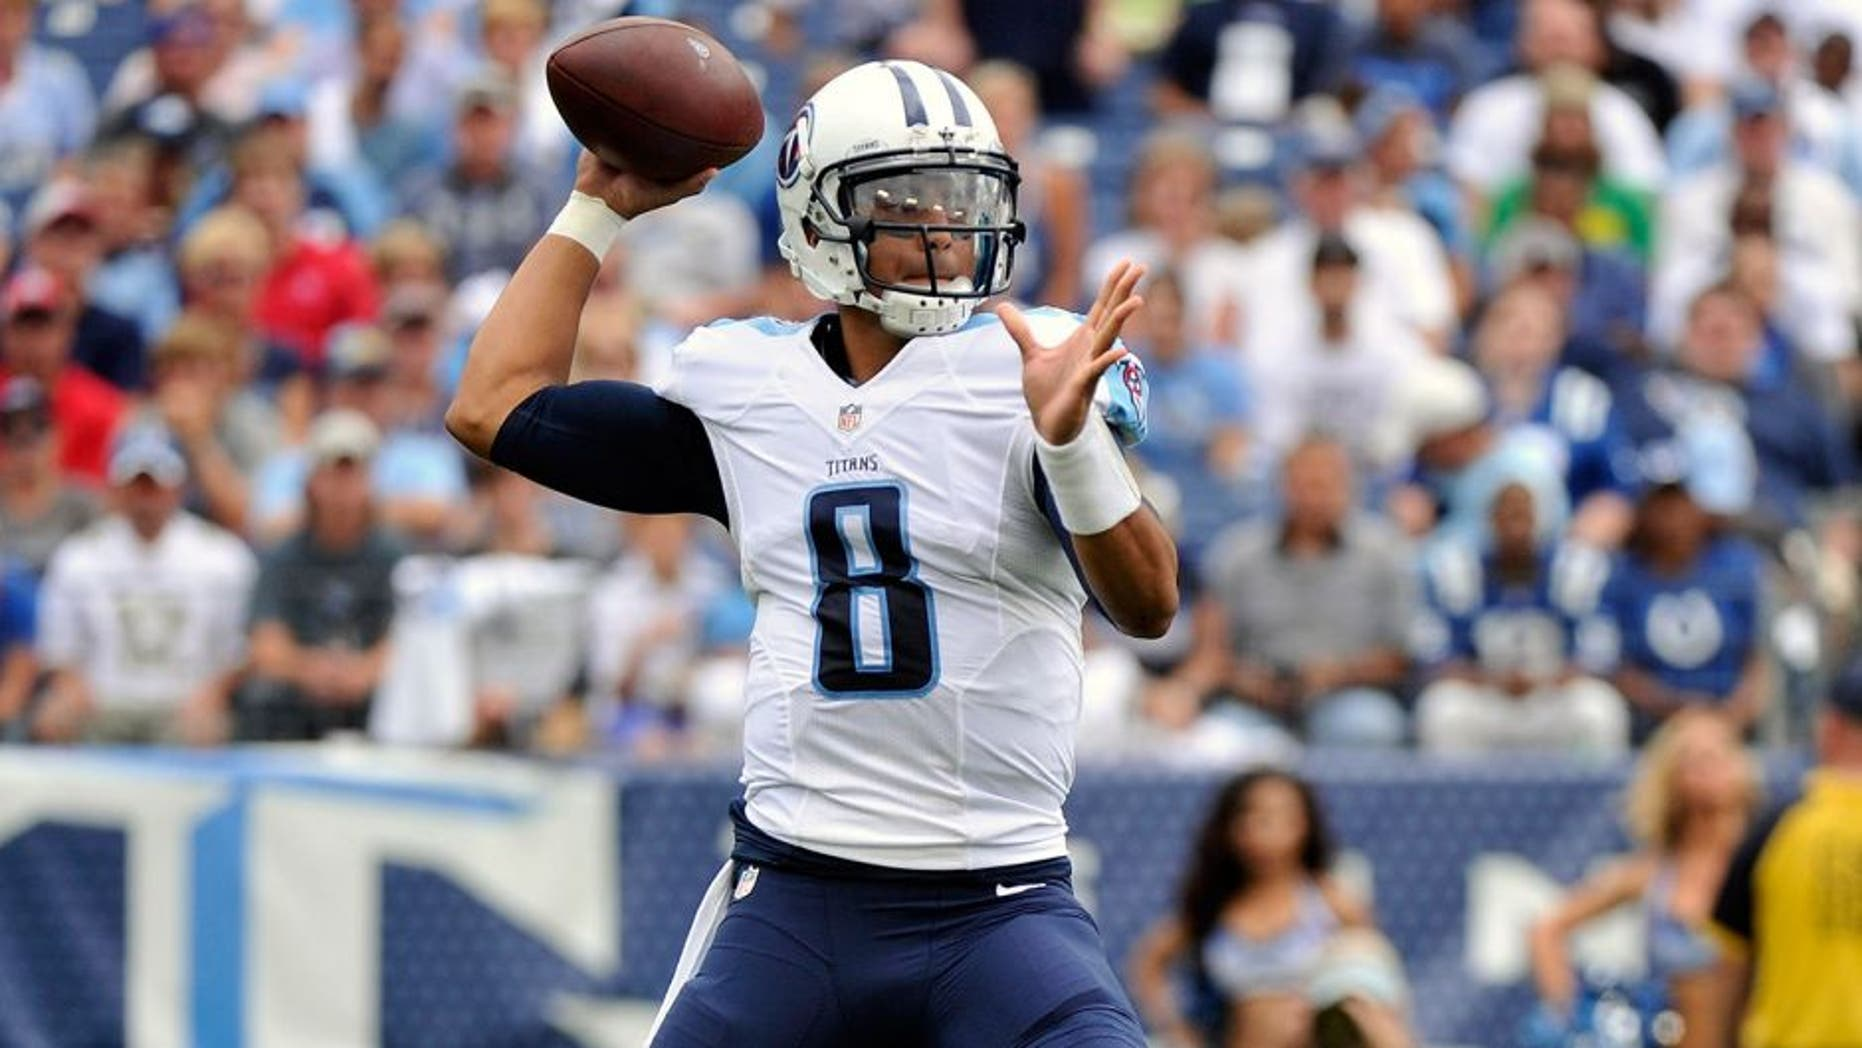 NASHVILLE, TN - SEPTEMBER 27: Marcus Mariota #8 of the Tennessee Titans drops back to throw a pass against the Indianapolis Colts at Nissan Stadium on September 27, 2015 in Nashville, Tennessee. (Photo by Frederick Breedon/Getty Images)